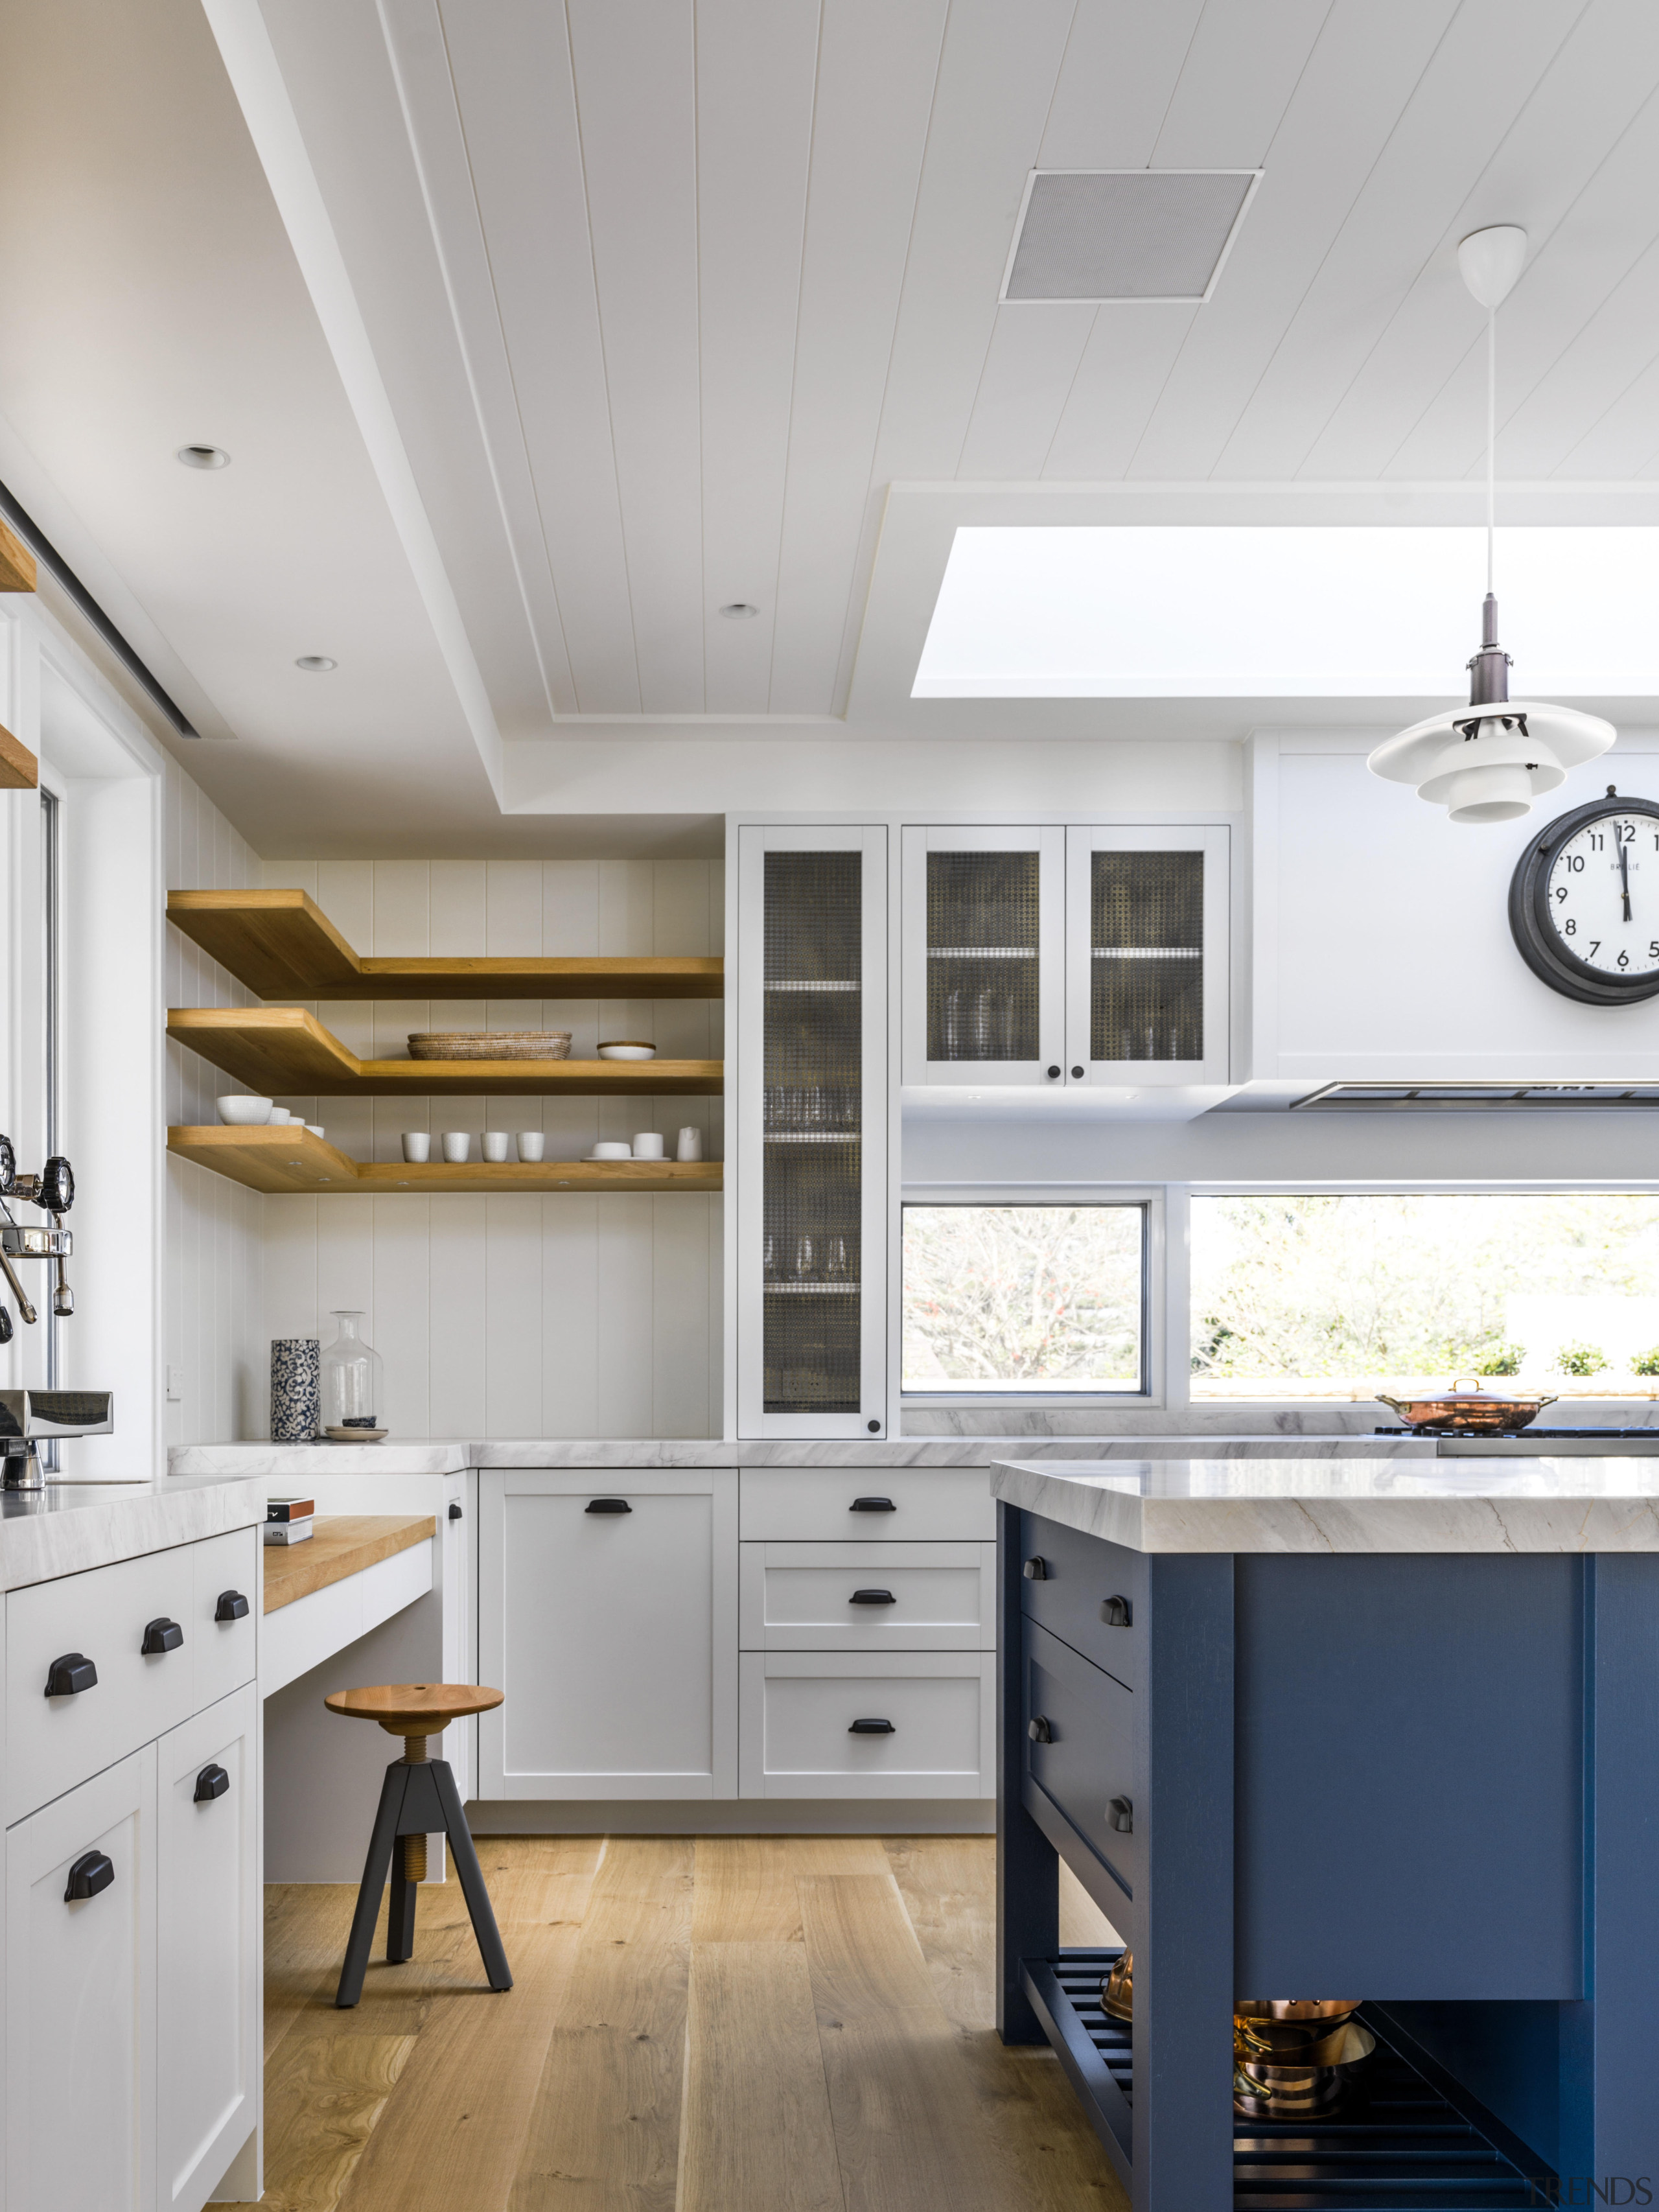 Shiplap board walls and ceiling; Shaker-style, panelled, furniture-like gray